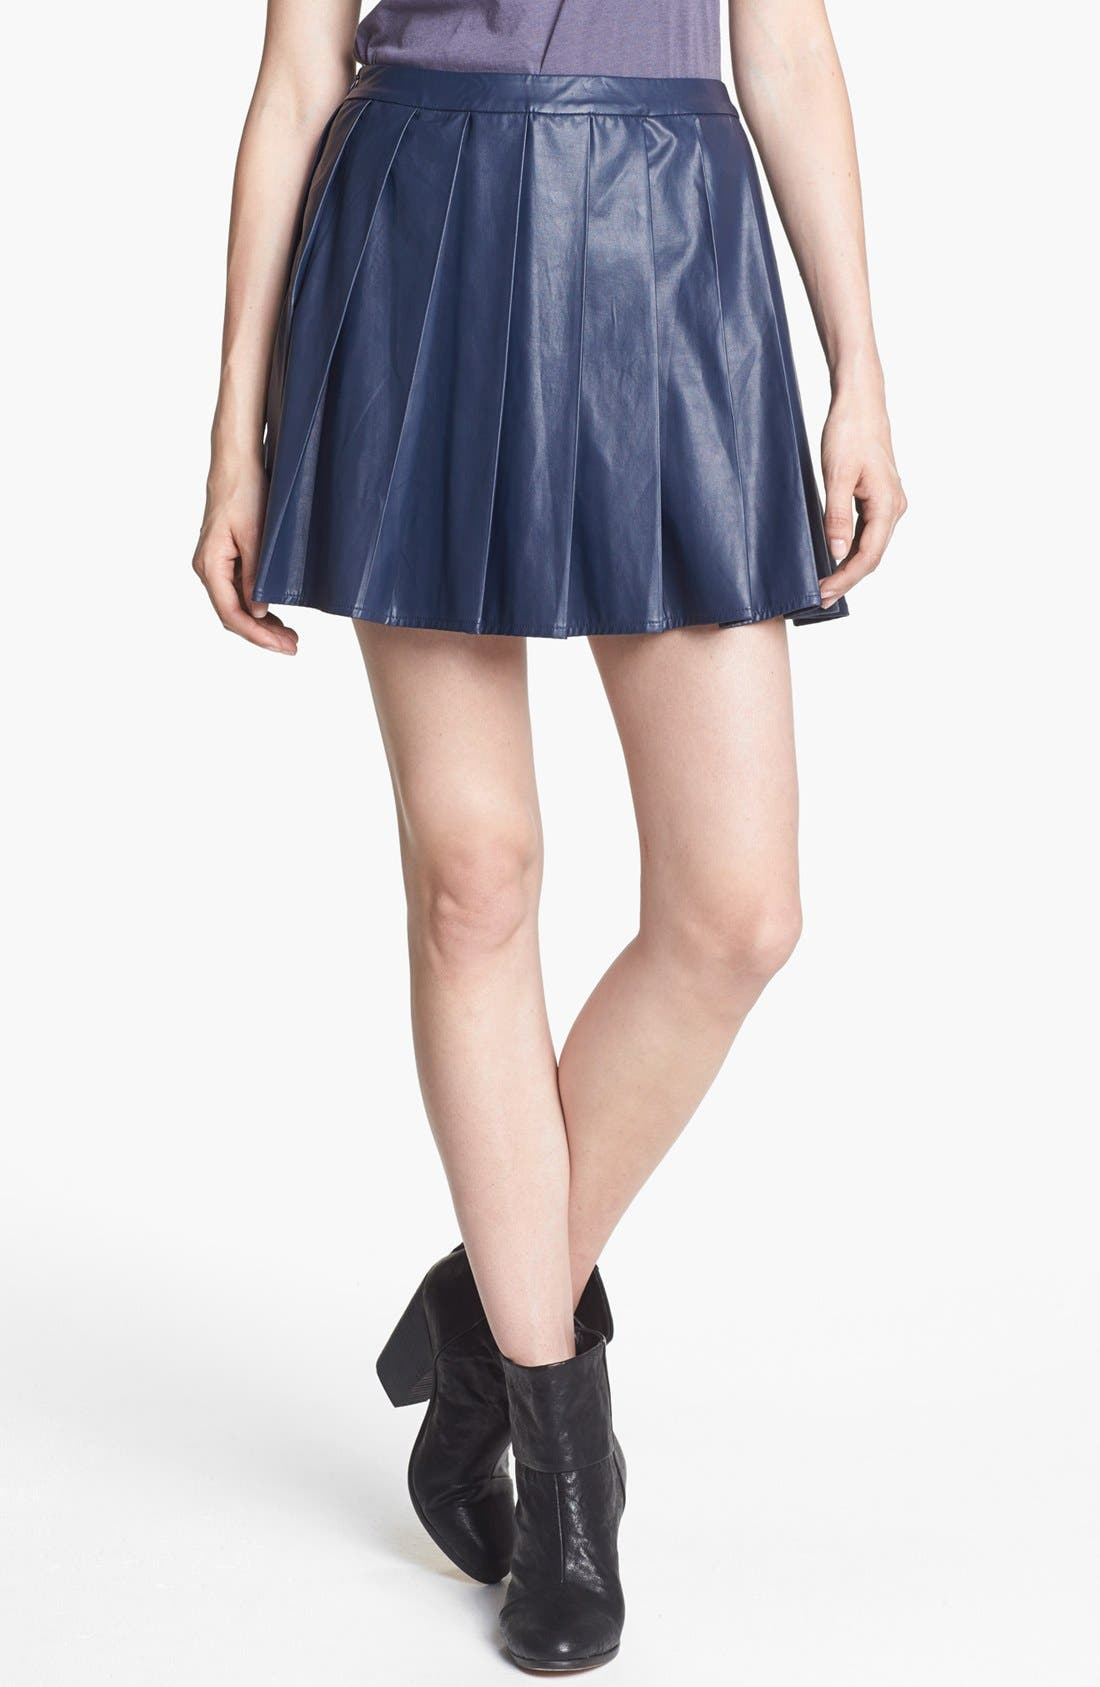 ASTR THE LABEL, ASTR Pleated Faux Leather Skirt, Main thumbnail 1, color, 422